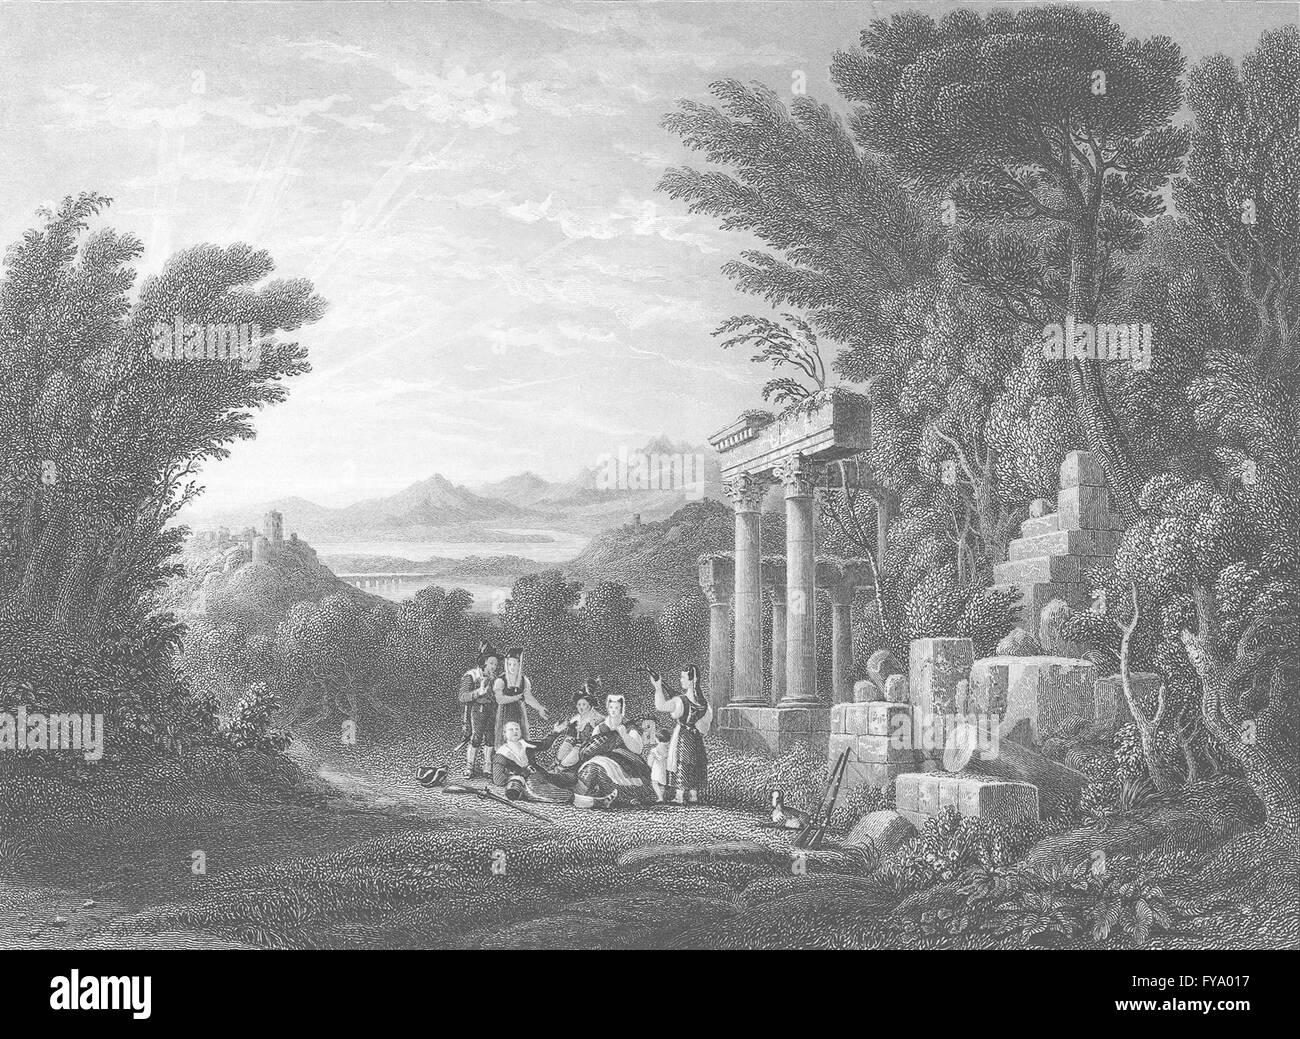 SOCIETY: Evening(Composition), antique print 1836 Stock Photo